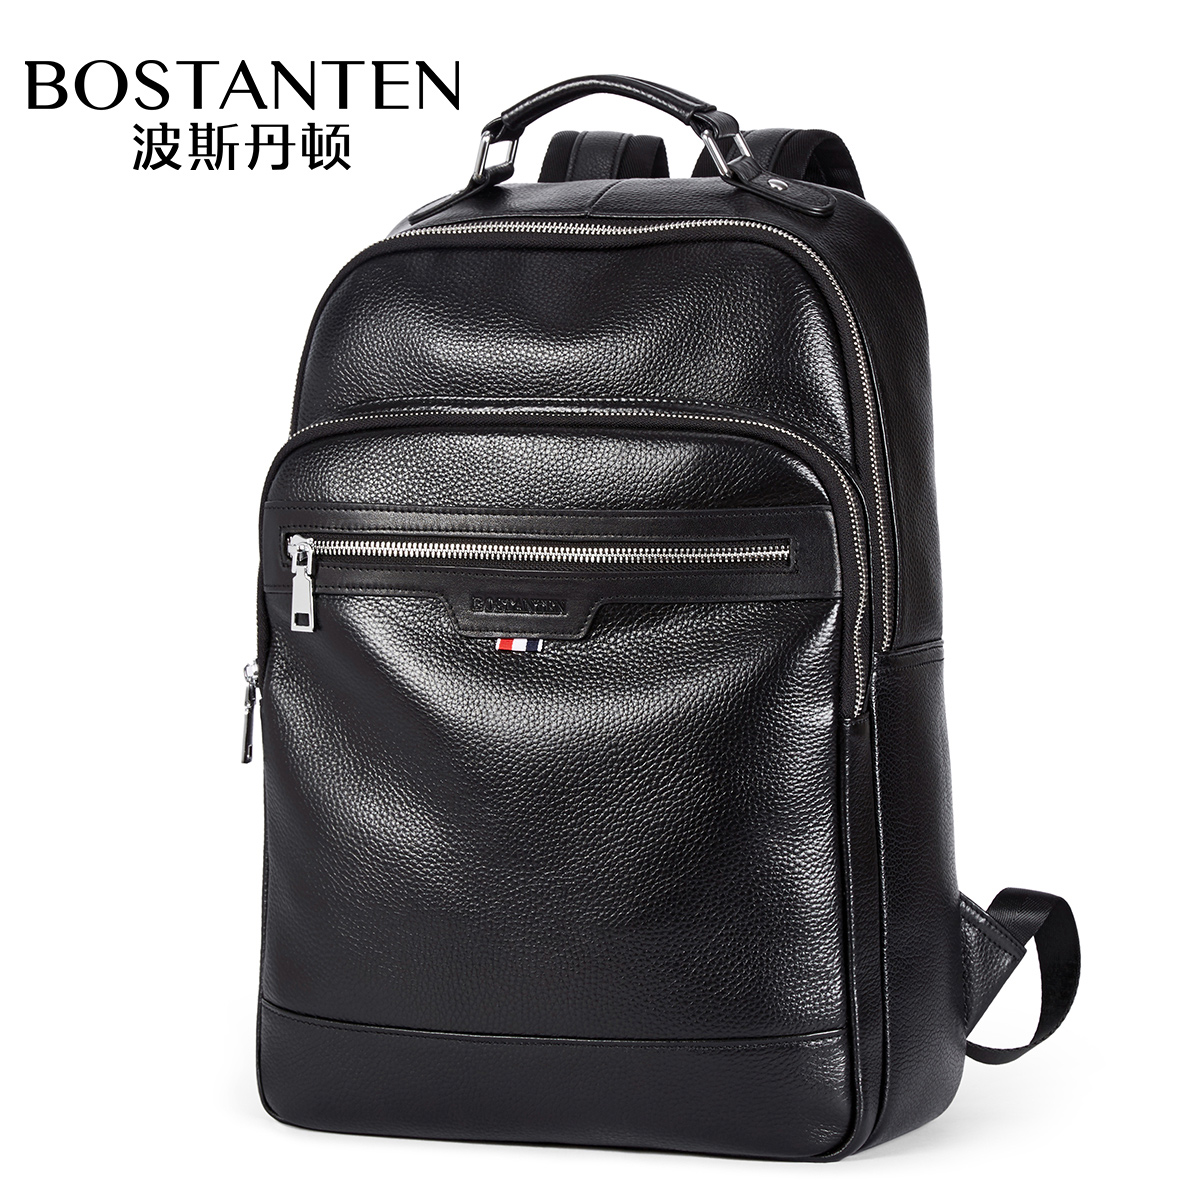 Brown Real Cow Leather Male New Knapsacks H072 Big Clearance Sale Luggage & Bags Doyutig Classical Mens Genuine Leather Business Backpacks High Capacity Black